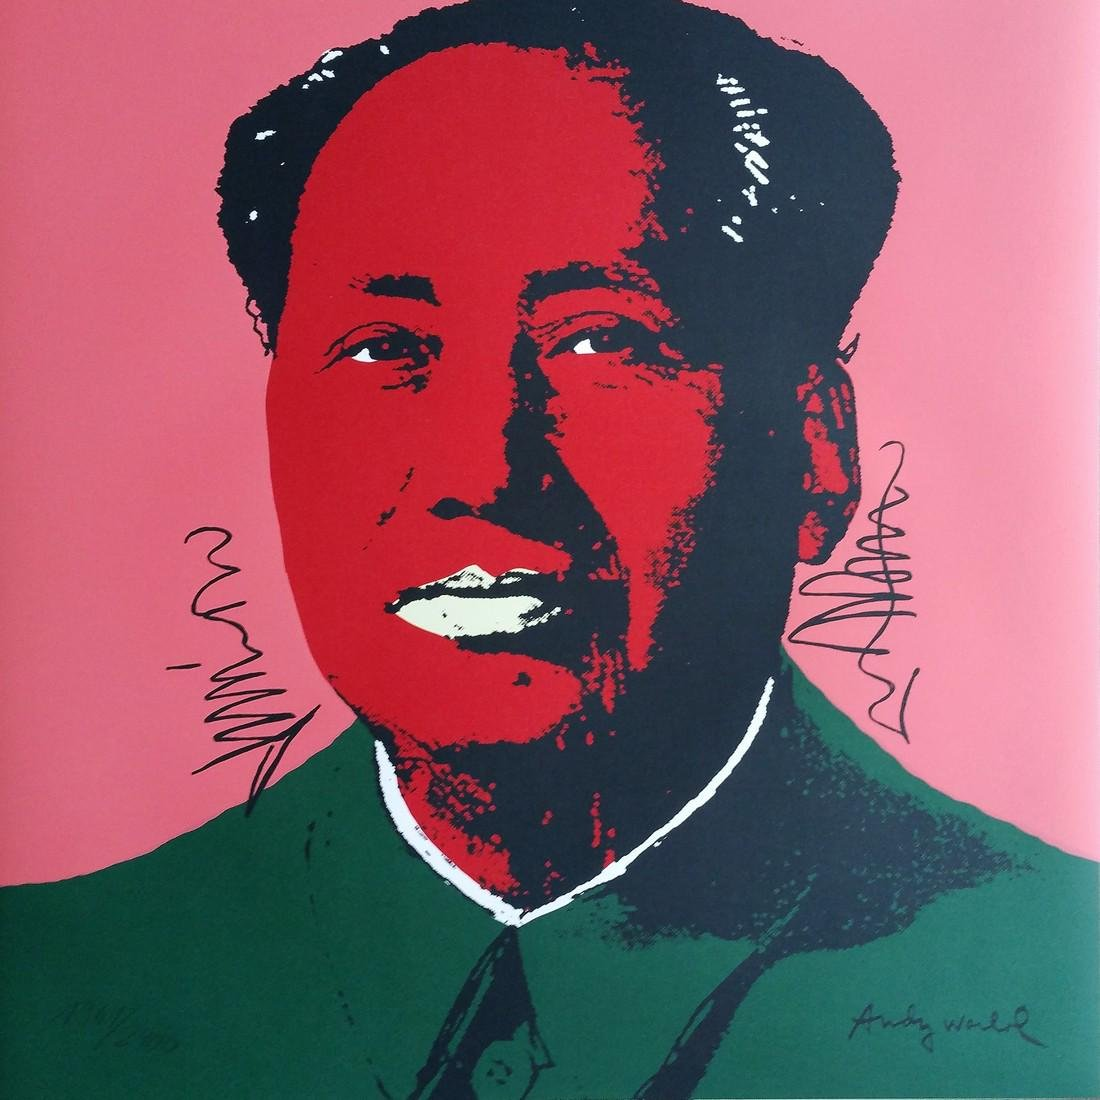 Mao (1967), Granolithograph - Andy Warhol